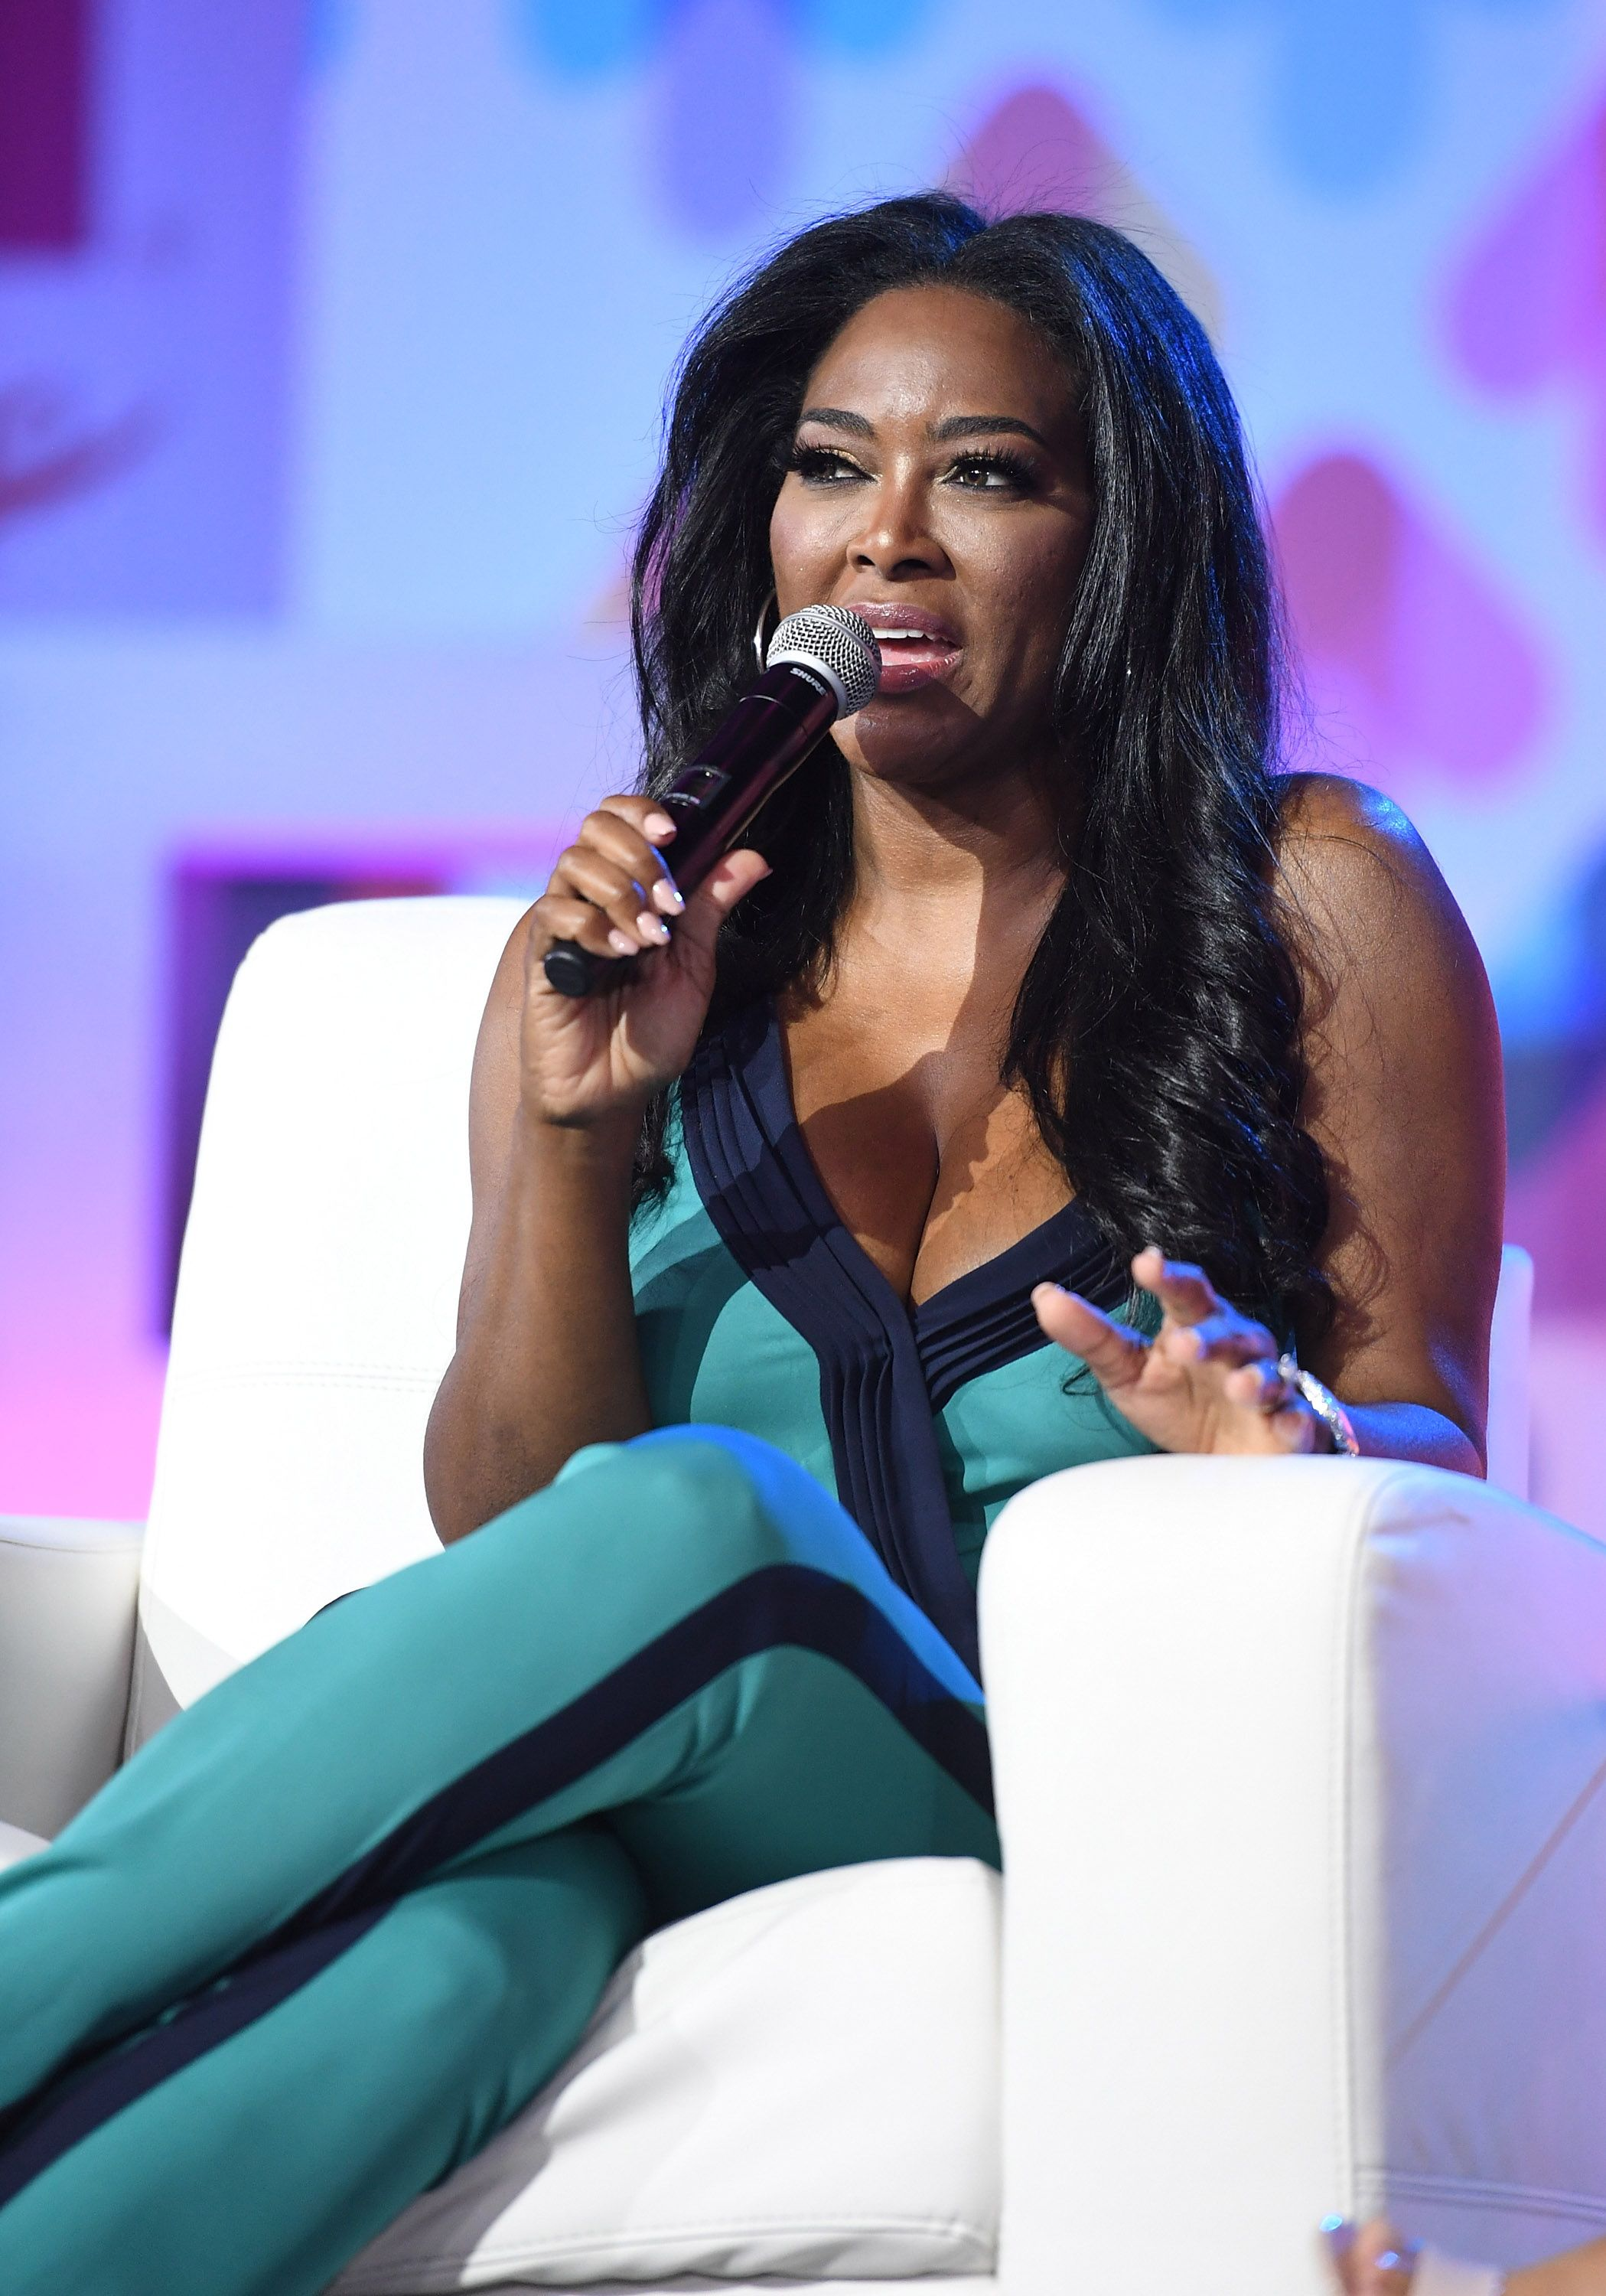 Kenya Moore at the Essence Festival on June 30, 2017 in New Orleans.   Photo: Getty Images